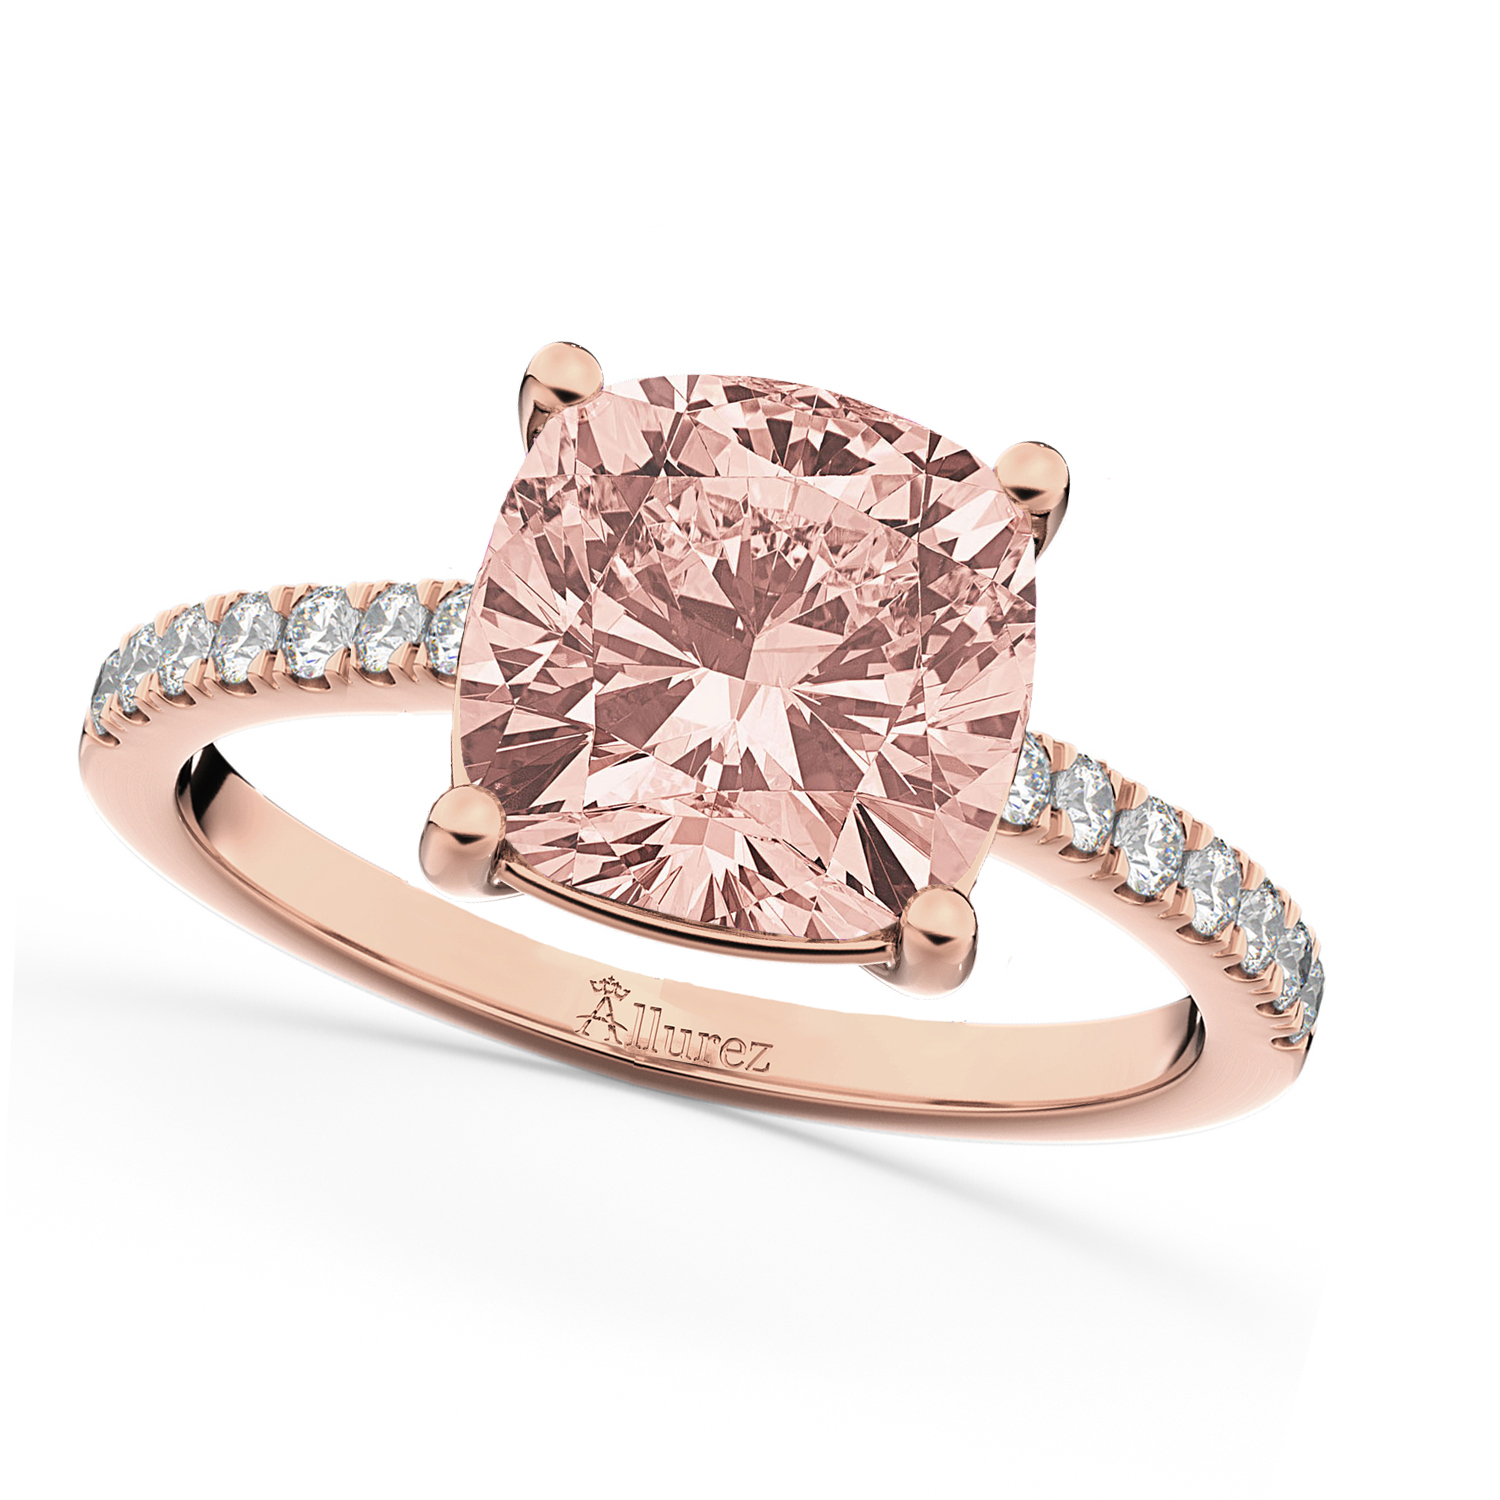 6170da7770fed Cushion Cut Morganite & Diamond Engagement Ring 14k Rose Gold (2.81ct)